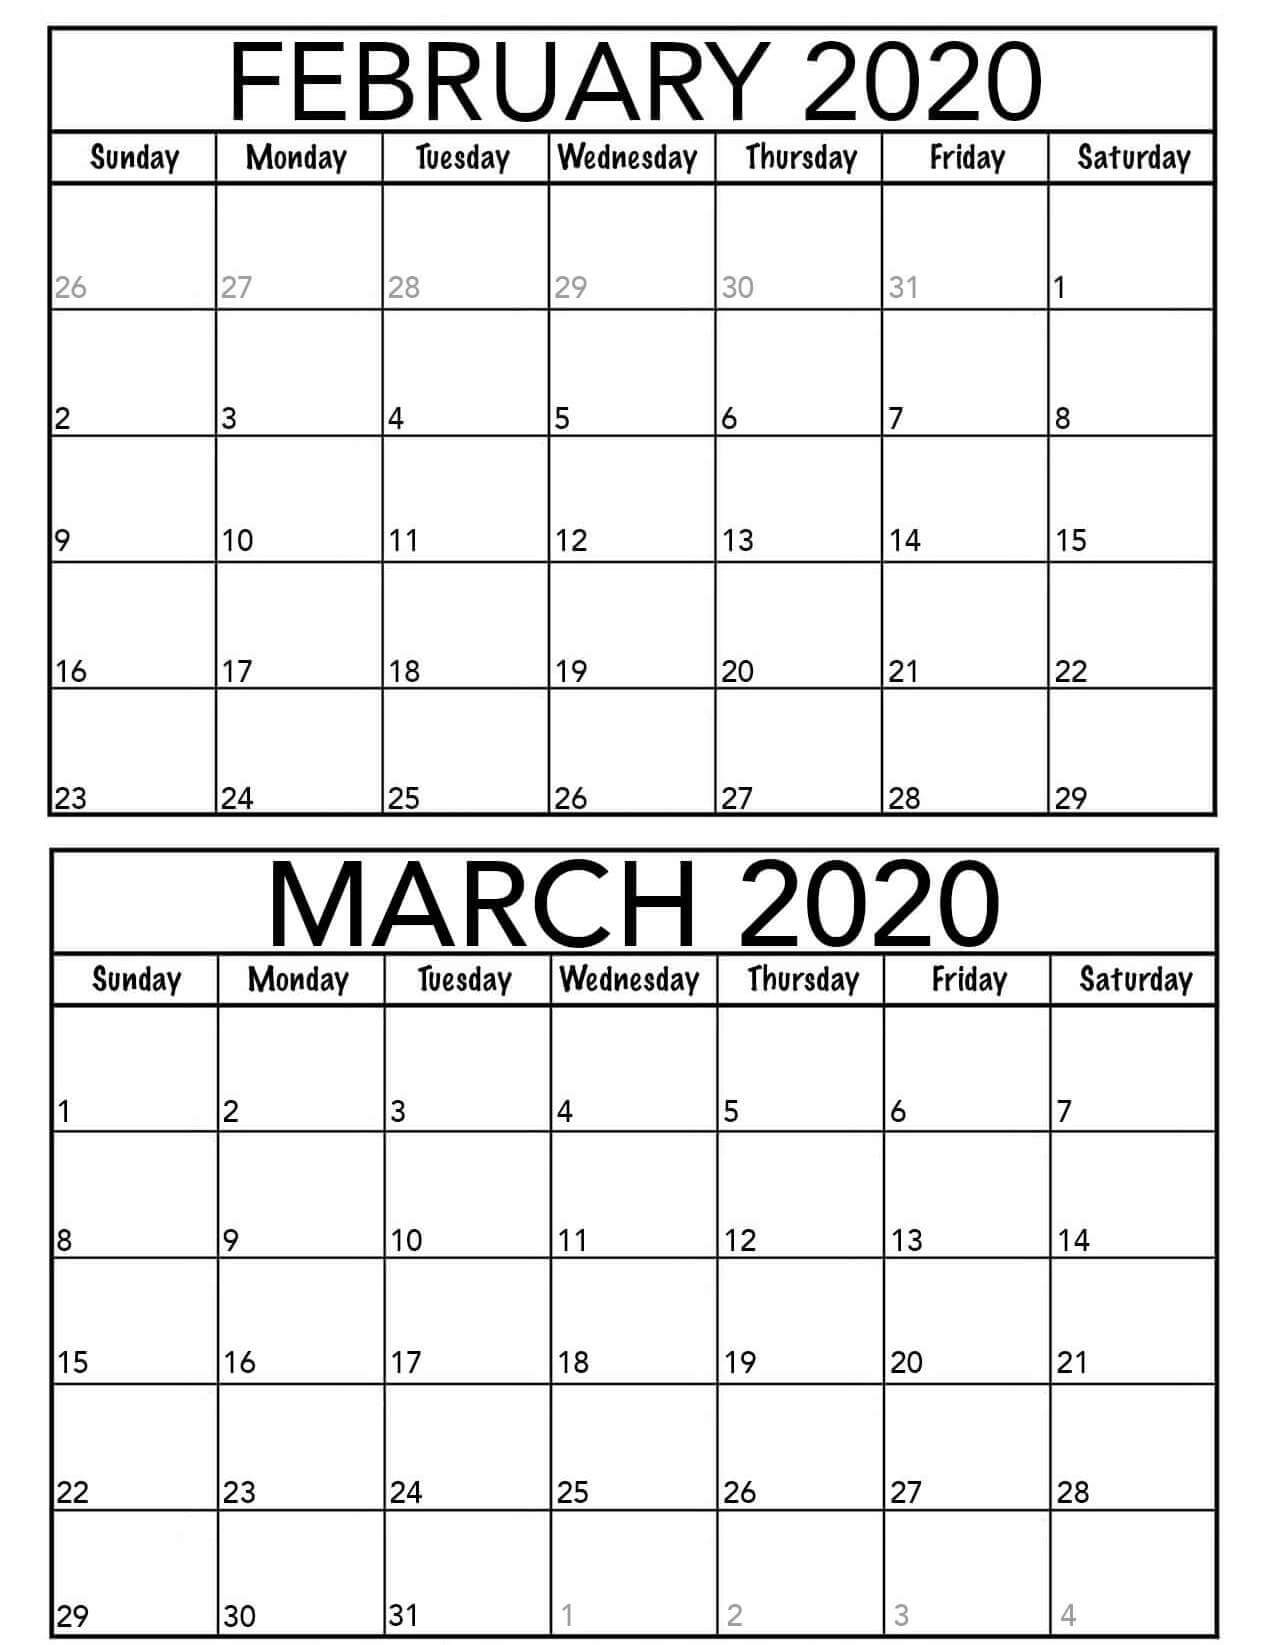 February March 2020 Calendar Template  2019 Calendars For throughout February And March 2020